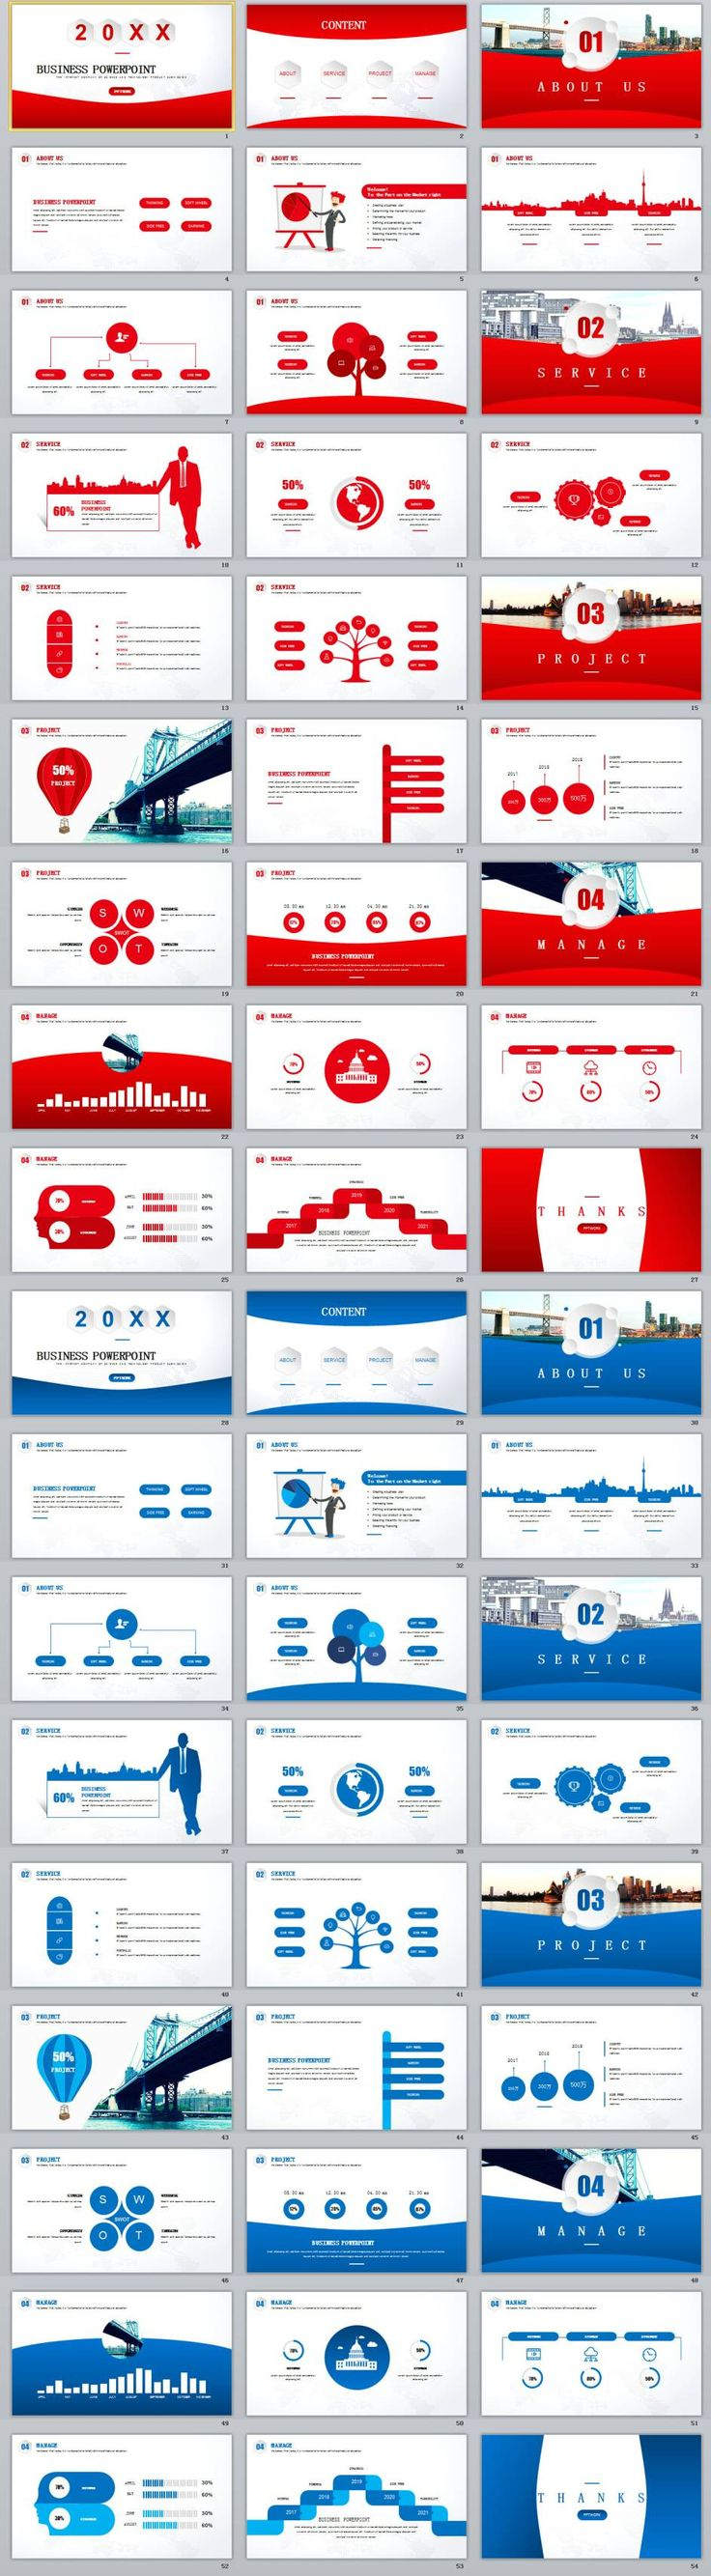 2in1+ RedBlue creative business chart report PowerPoint templates